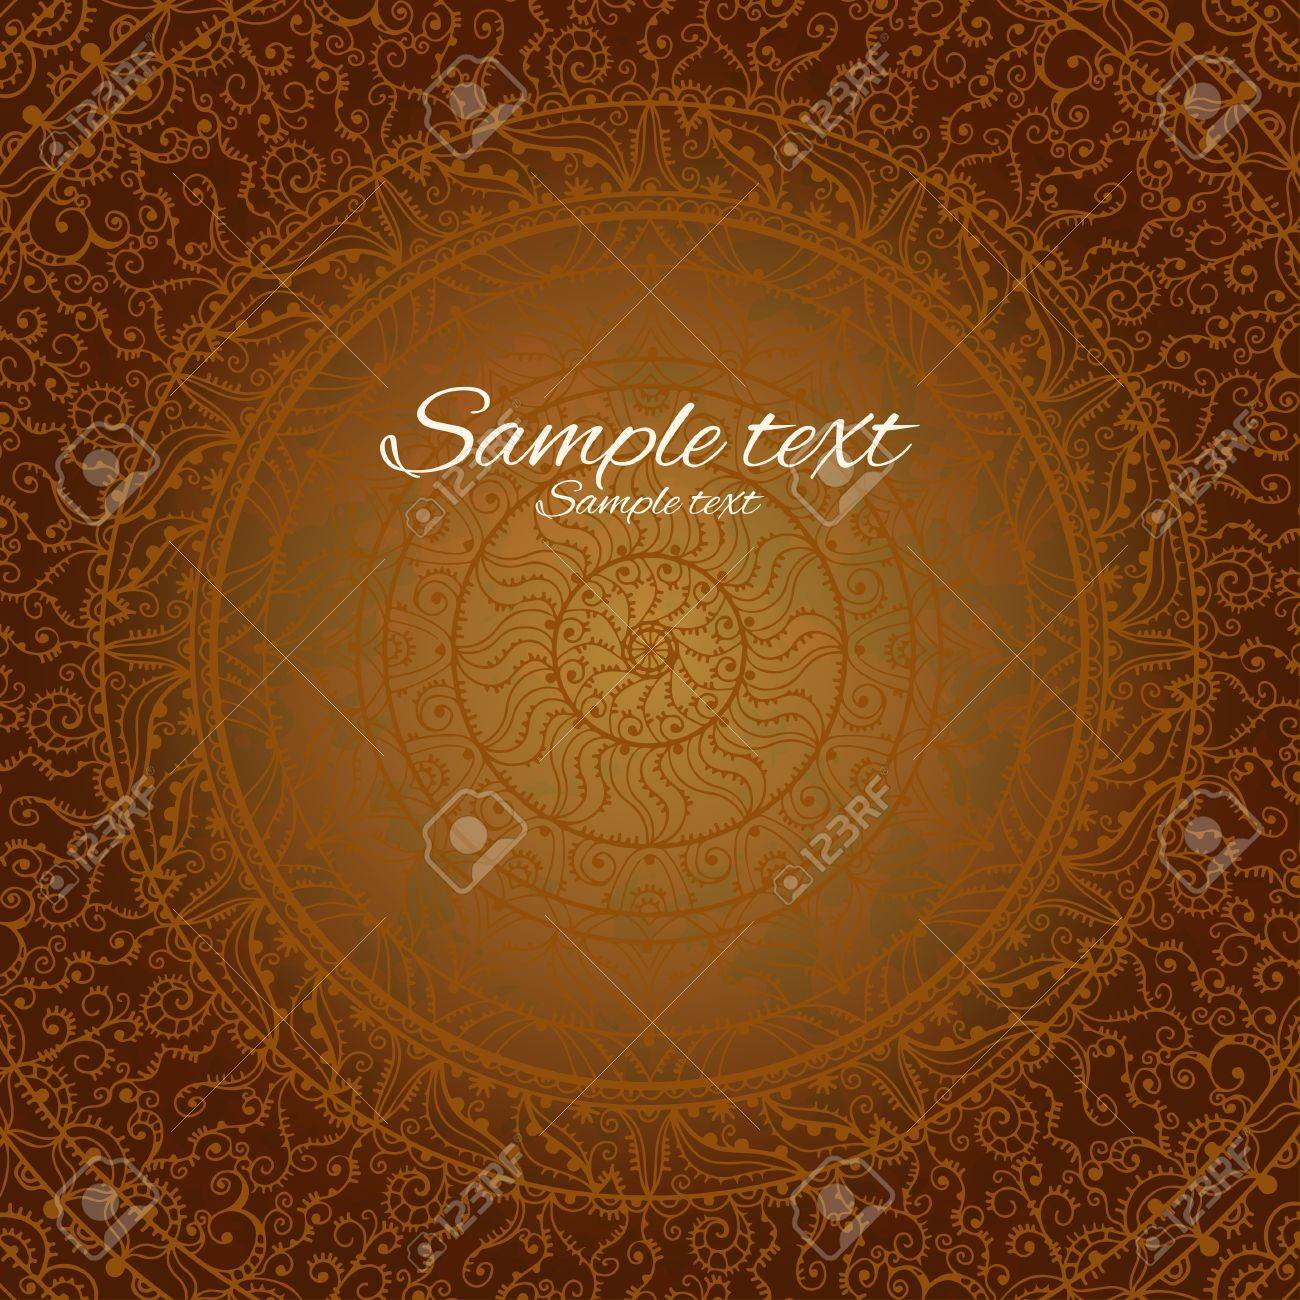 Vintage invitation decoration on brown  background with lace ornament-vector Stock Vector - 18649826